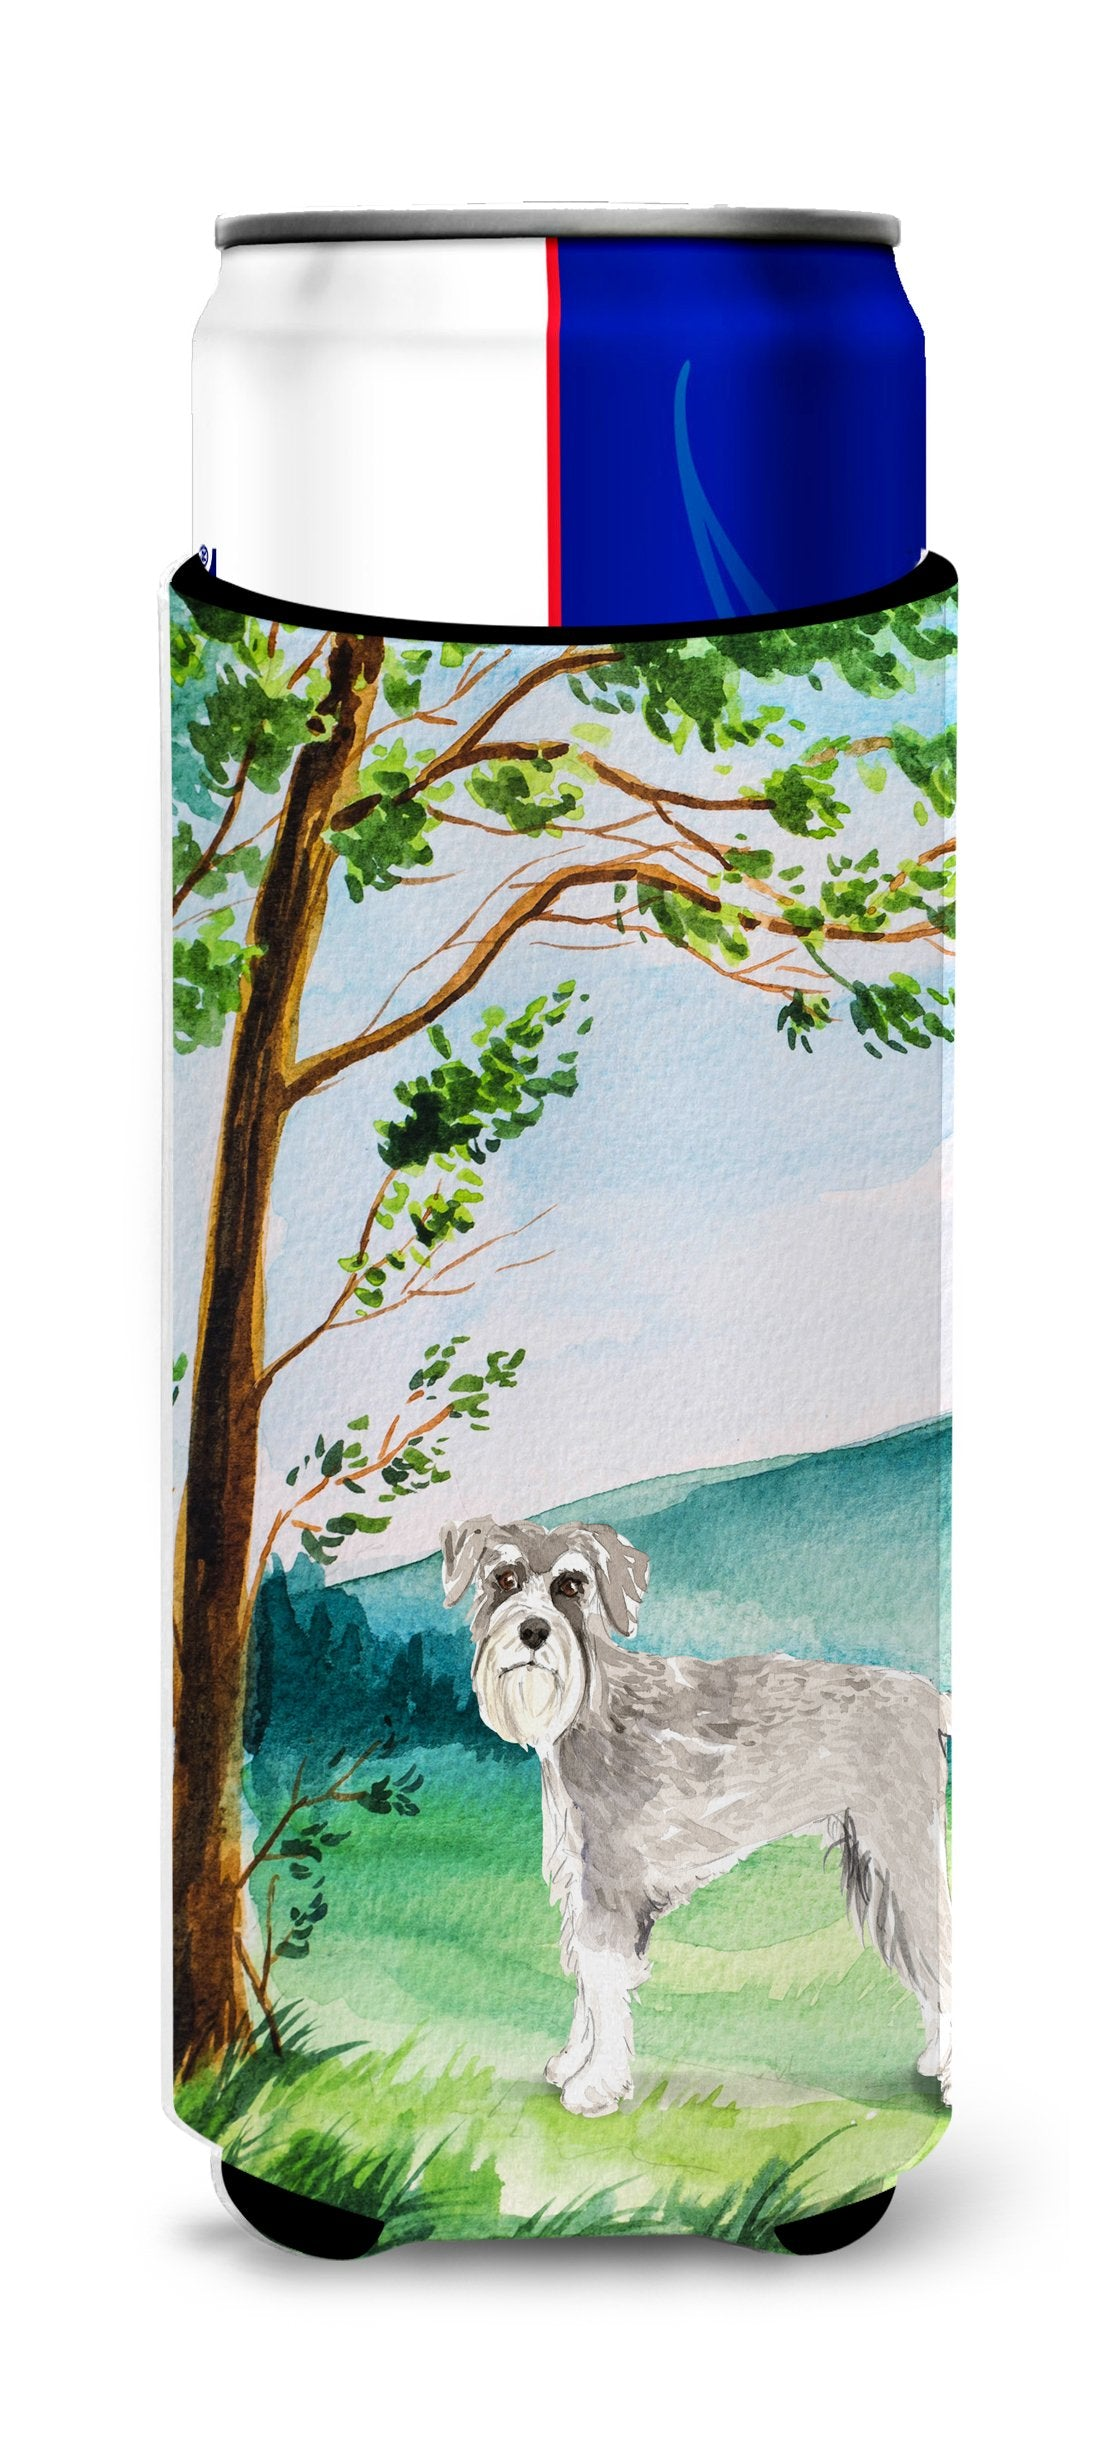 Under the Tree Schnauzer #1 Michelob Ultra Hugger for slim cans CK2560MUK by Caroline's Treasures